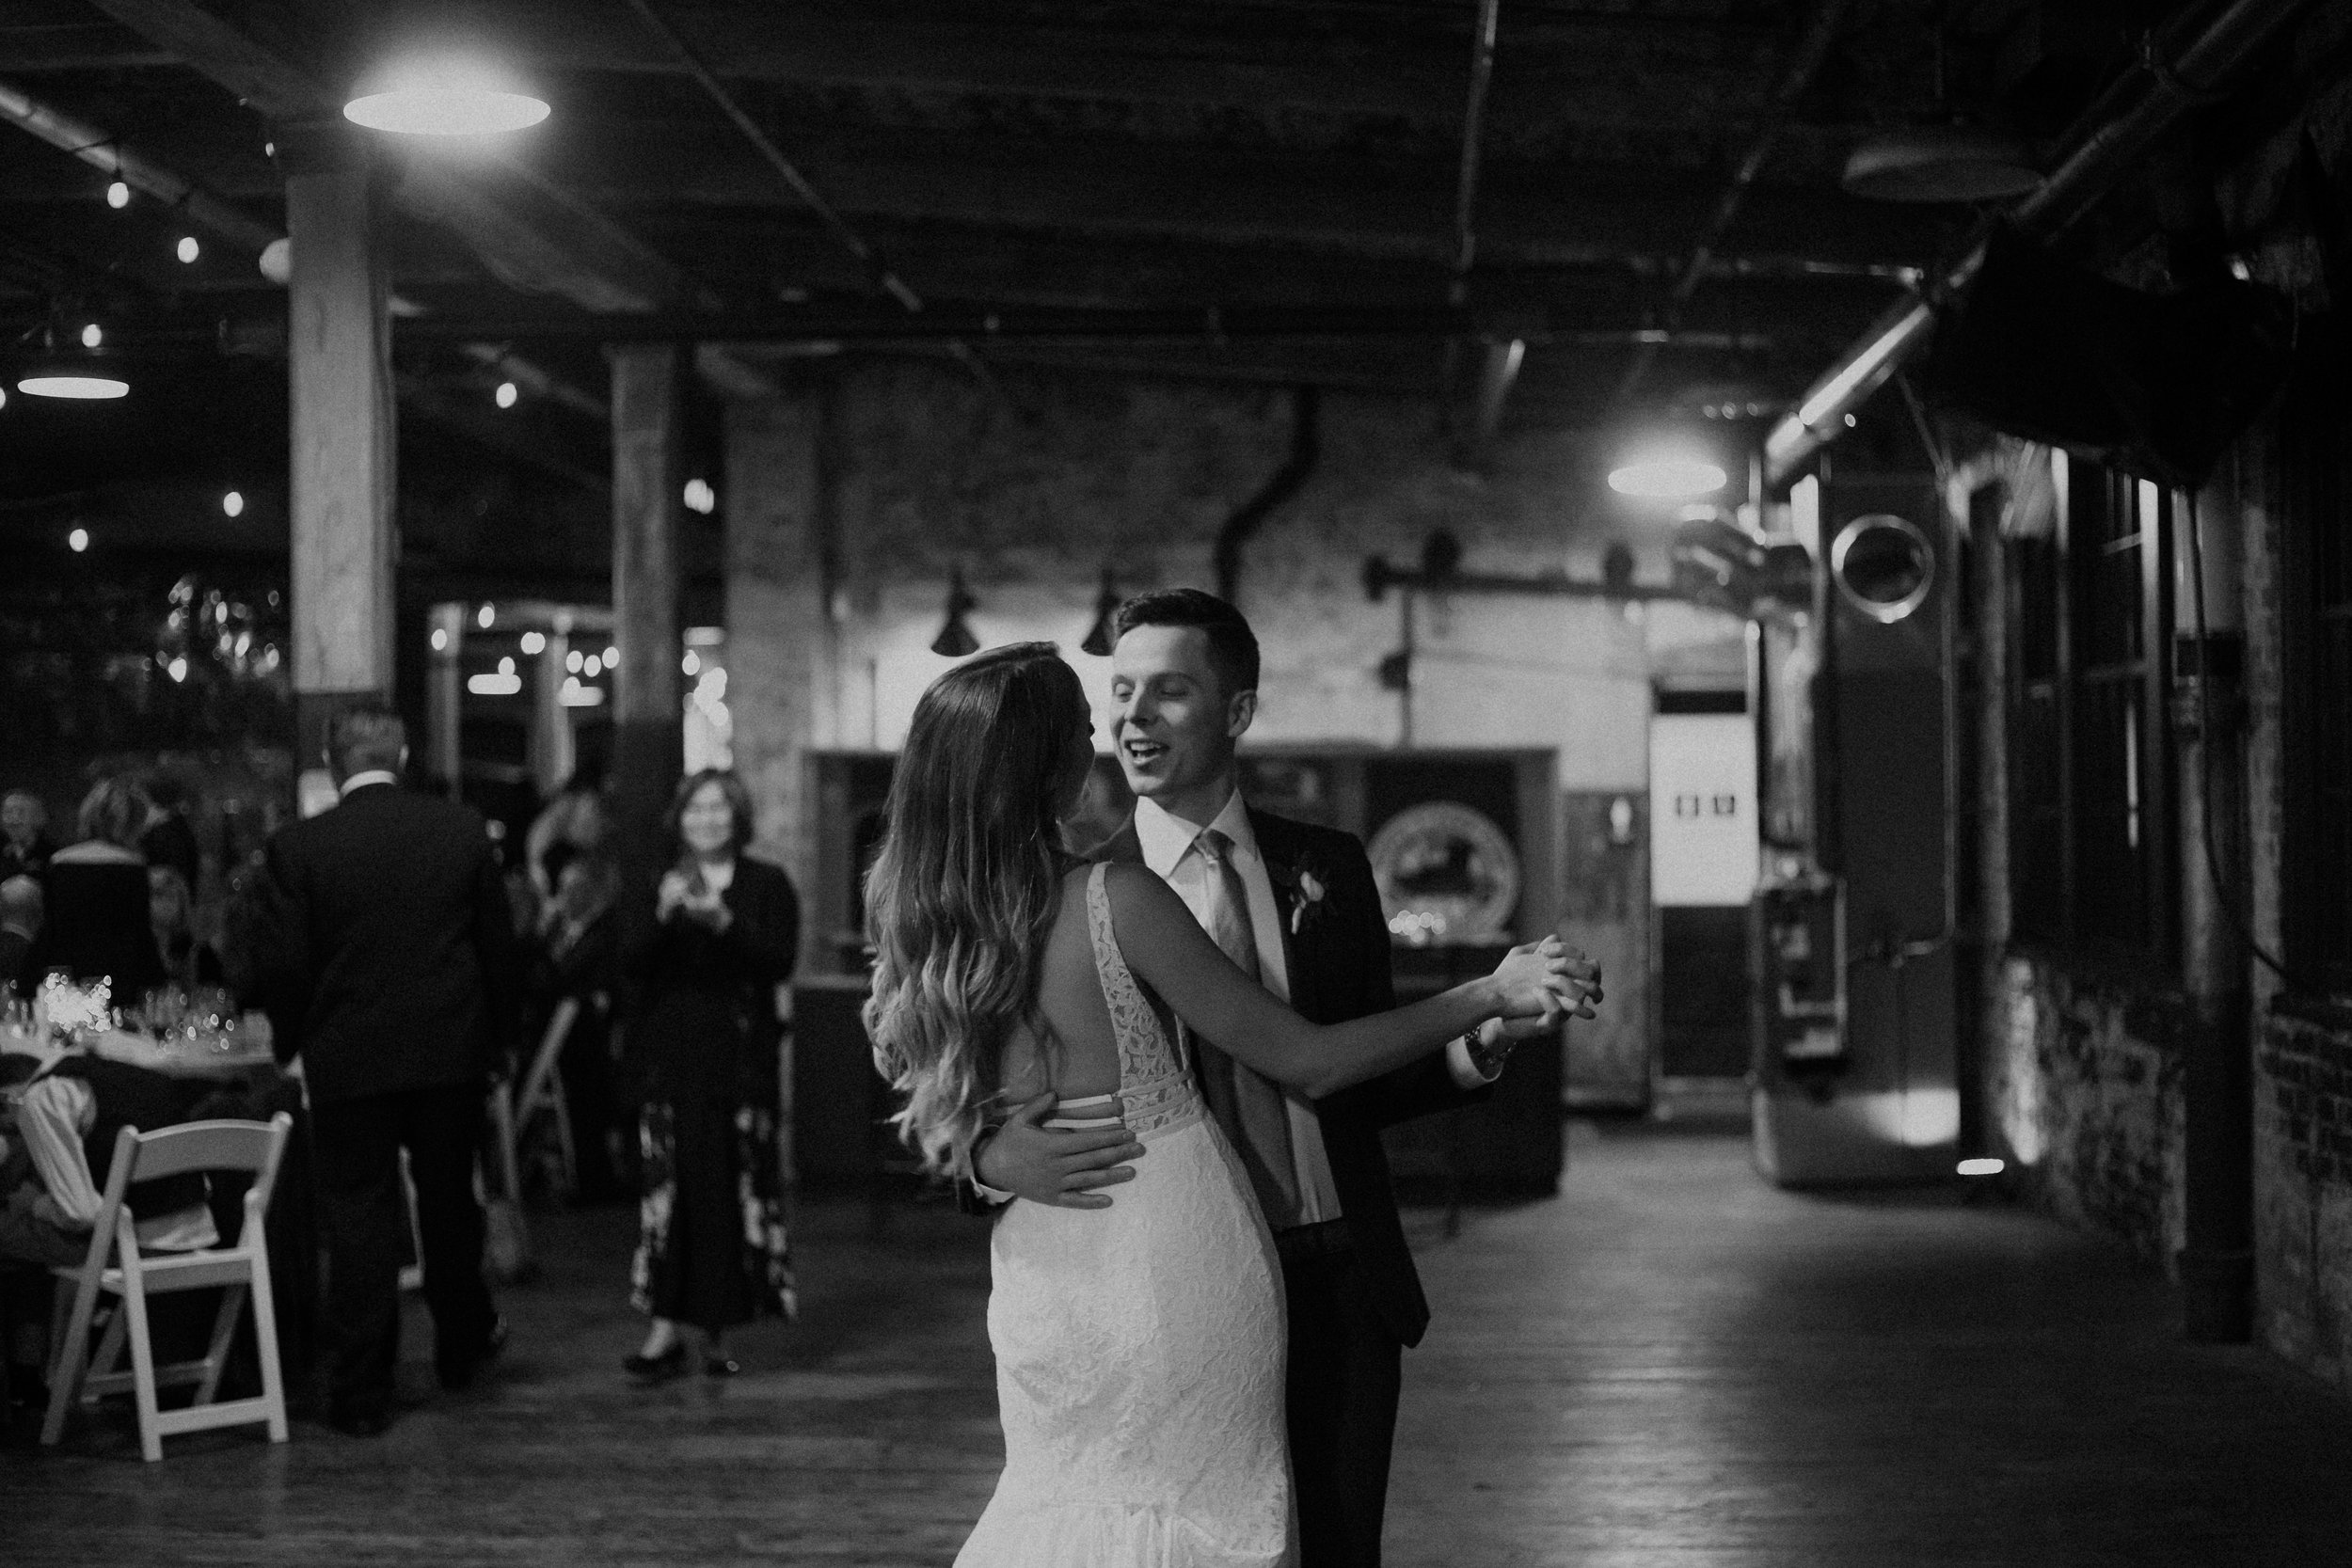 Katie_Vonasek_Photography_Ford_Piquette_Plant_Wedding_Detroit101.JPG